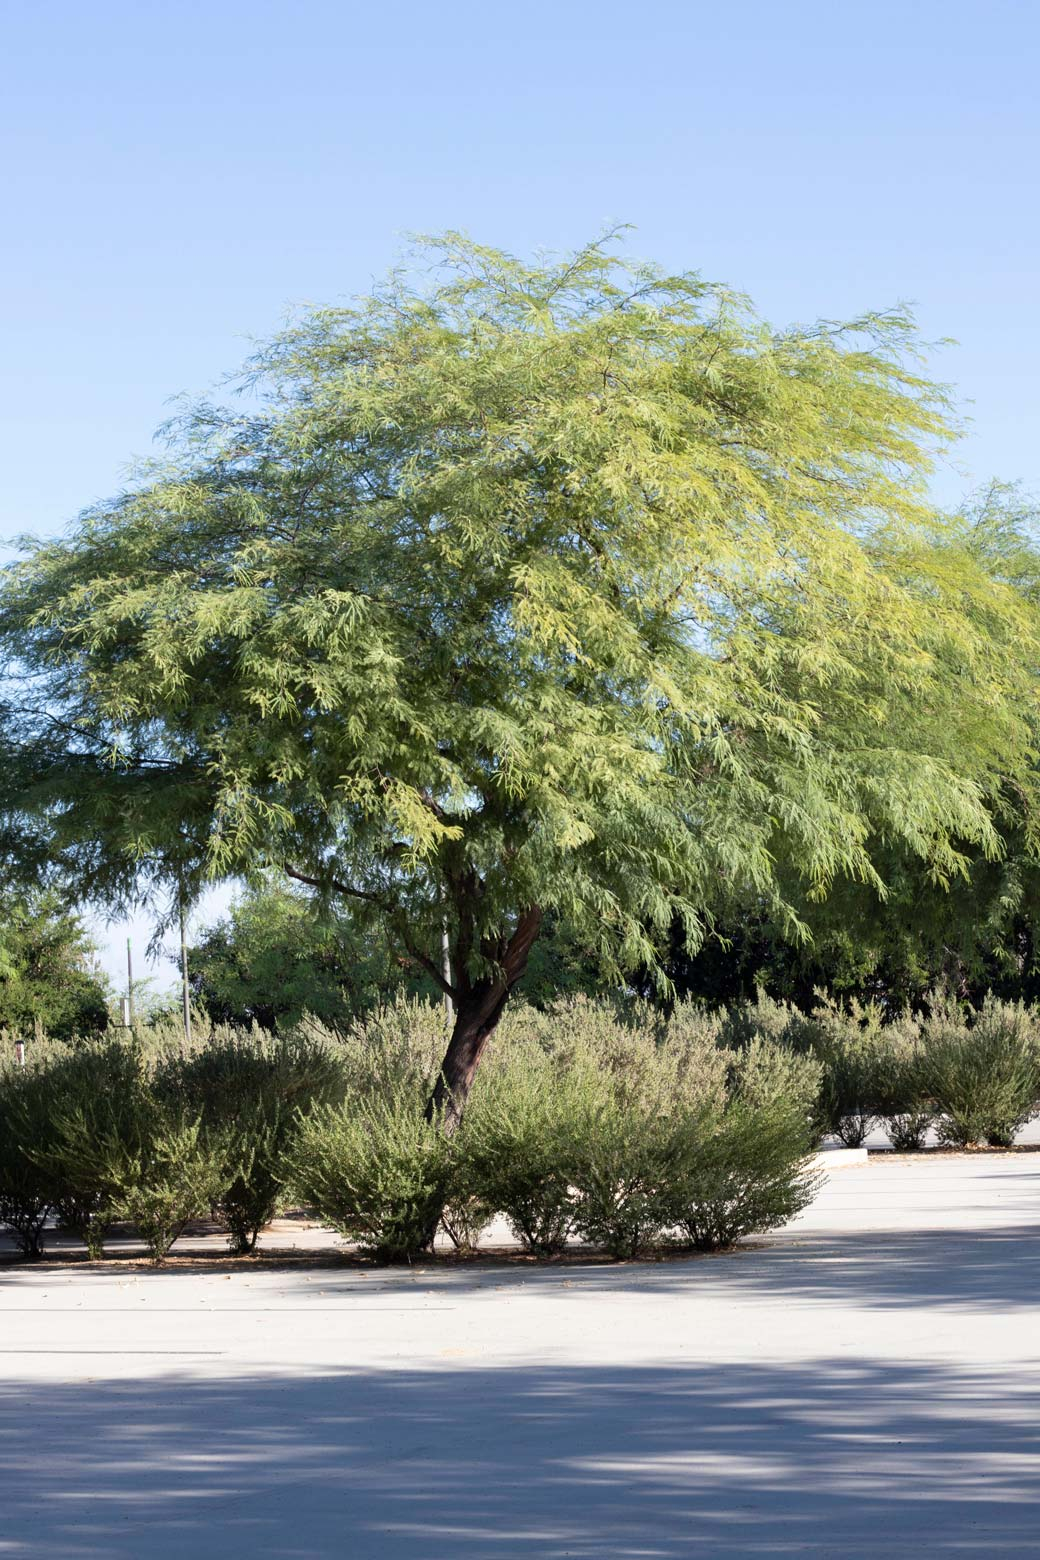 A Mesquite tree in the parking lot at Sunnylands Center and Gardens.